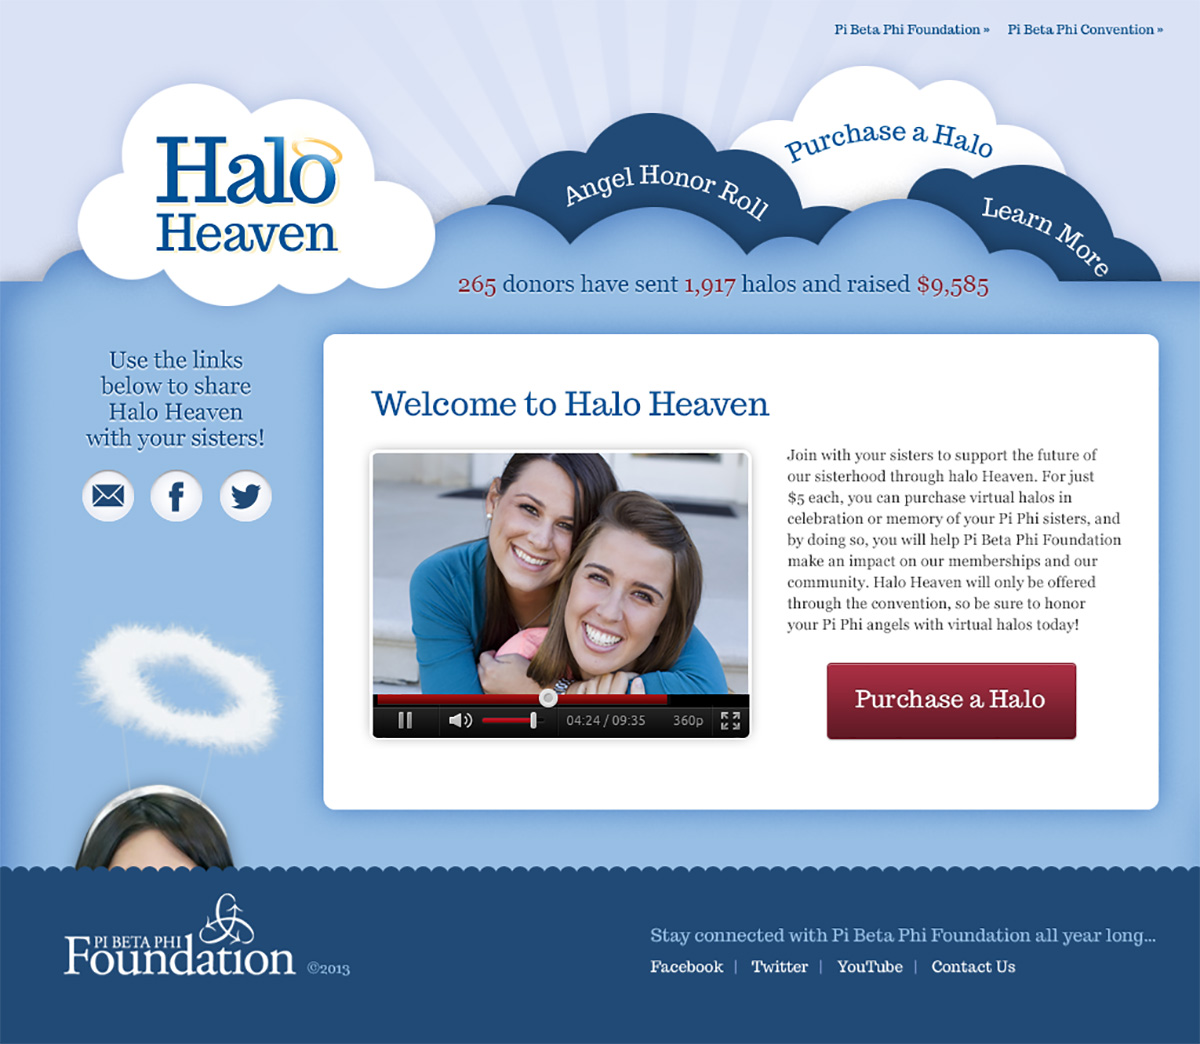 pi beta phi foundation's Halo Heaven fundraising  website